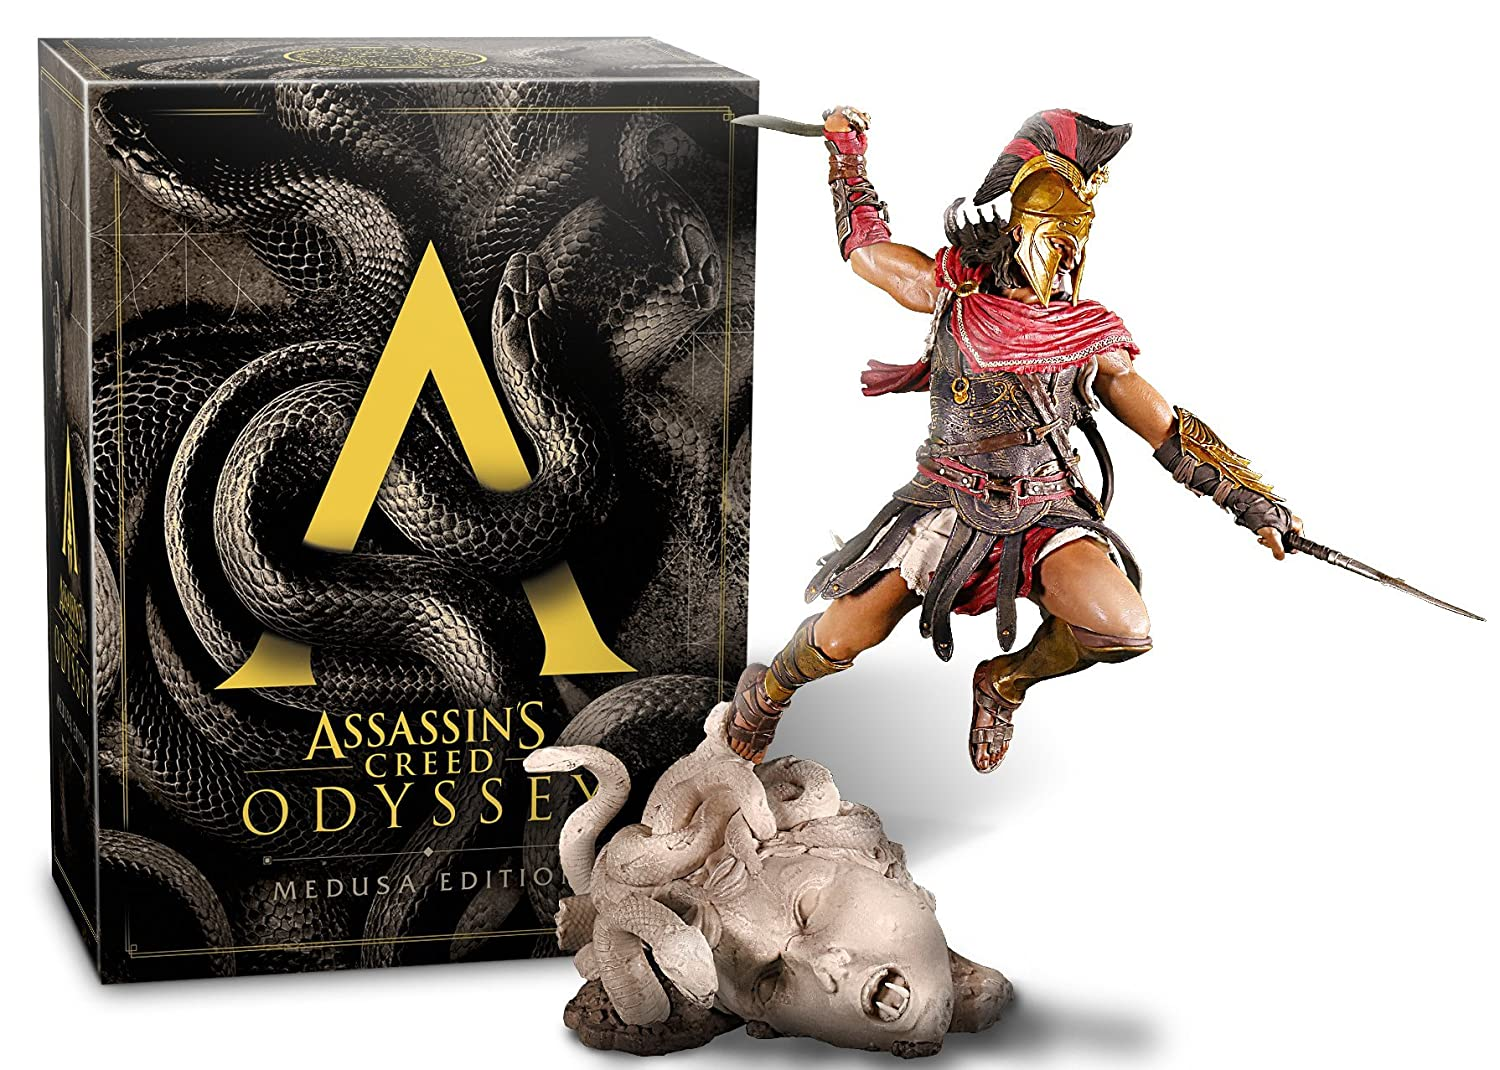 Assassin's Creed Odyssey Medusa Edition PS4